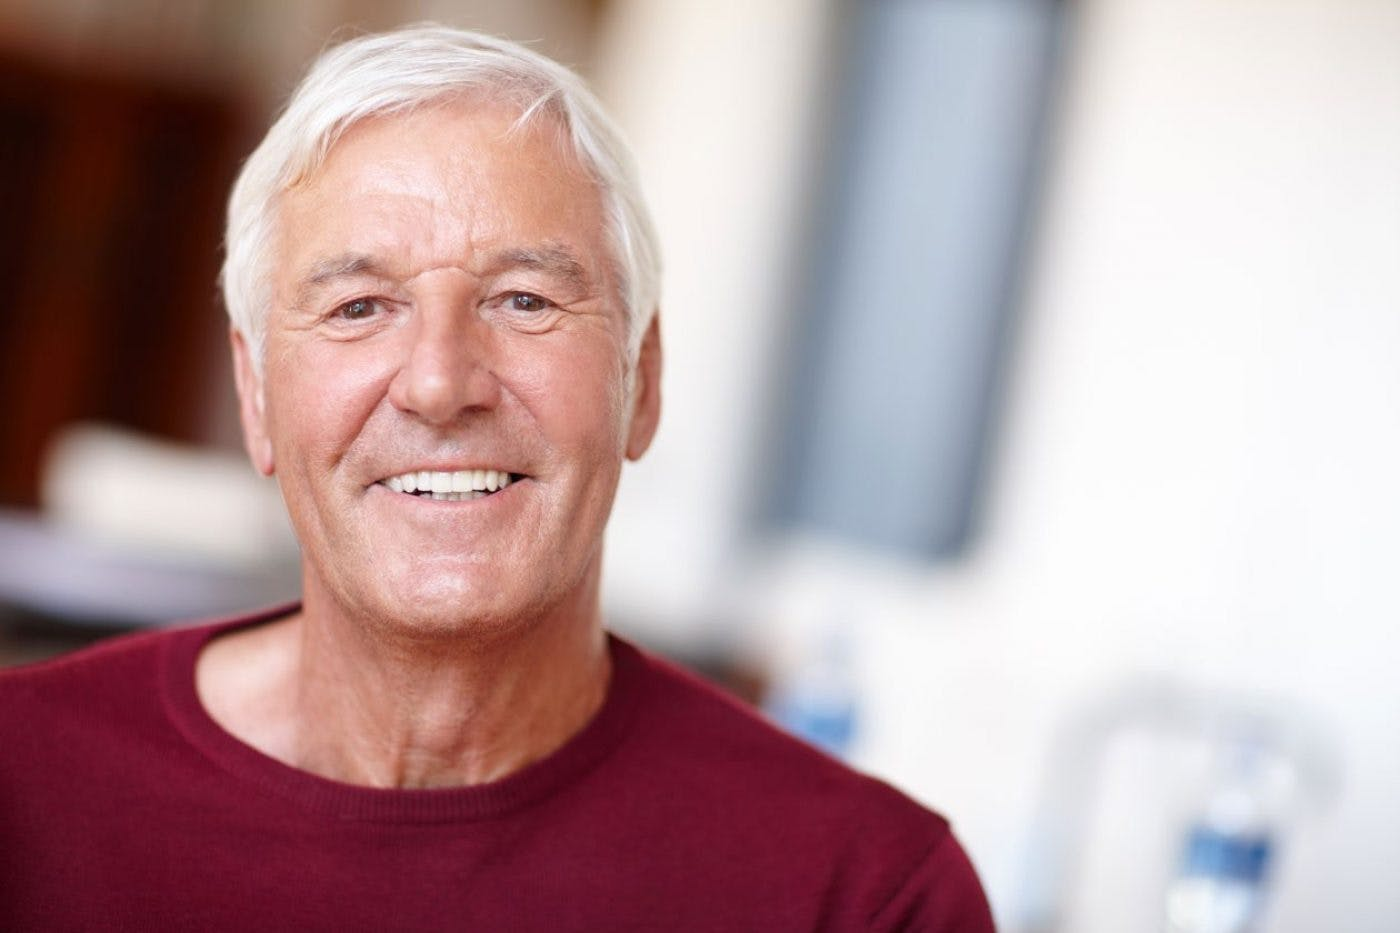 Freemanrosser Carmarthen Dental Implants Implantsecureddentures